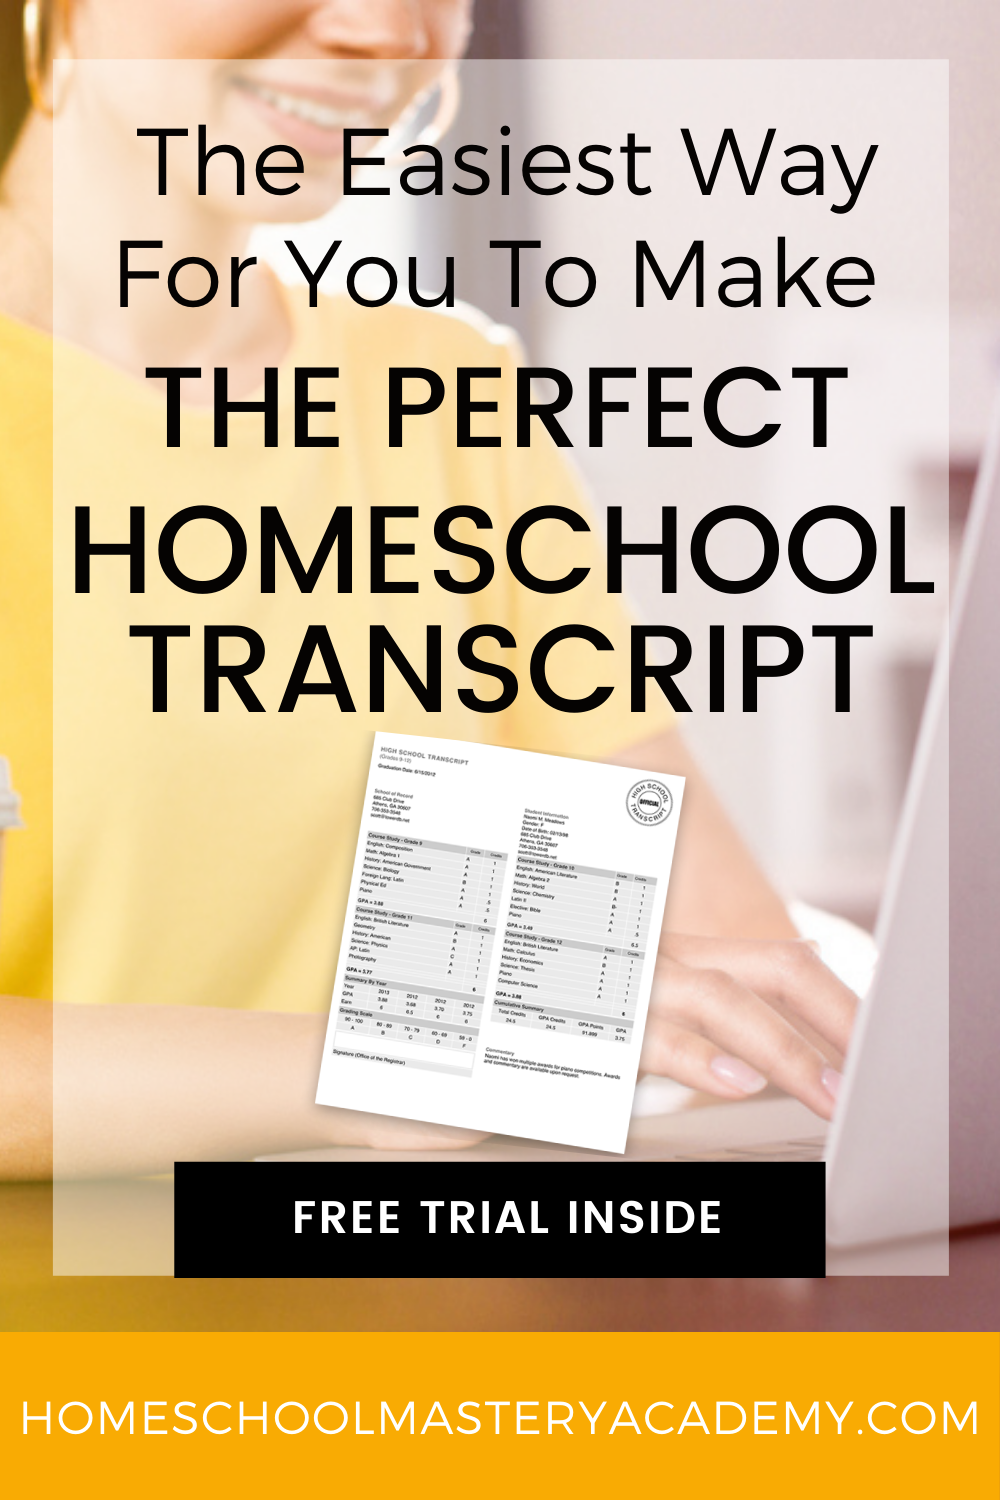 If you are unsure about creating a homeschool transcript on your own or feeling overwhelmed, we encourage you to take the easy route! #homeschooltranscript #homeschooltranscripts #homeschoolrecords #homeschoolhelp #homeschool #homeschoolhighschool